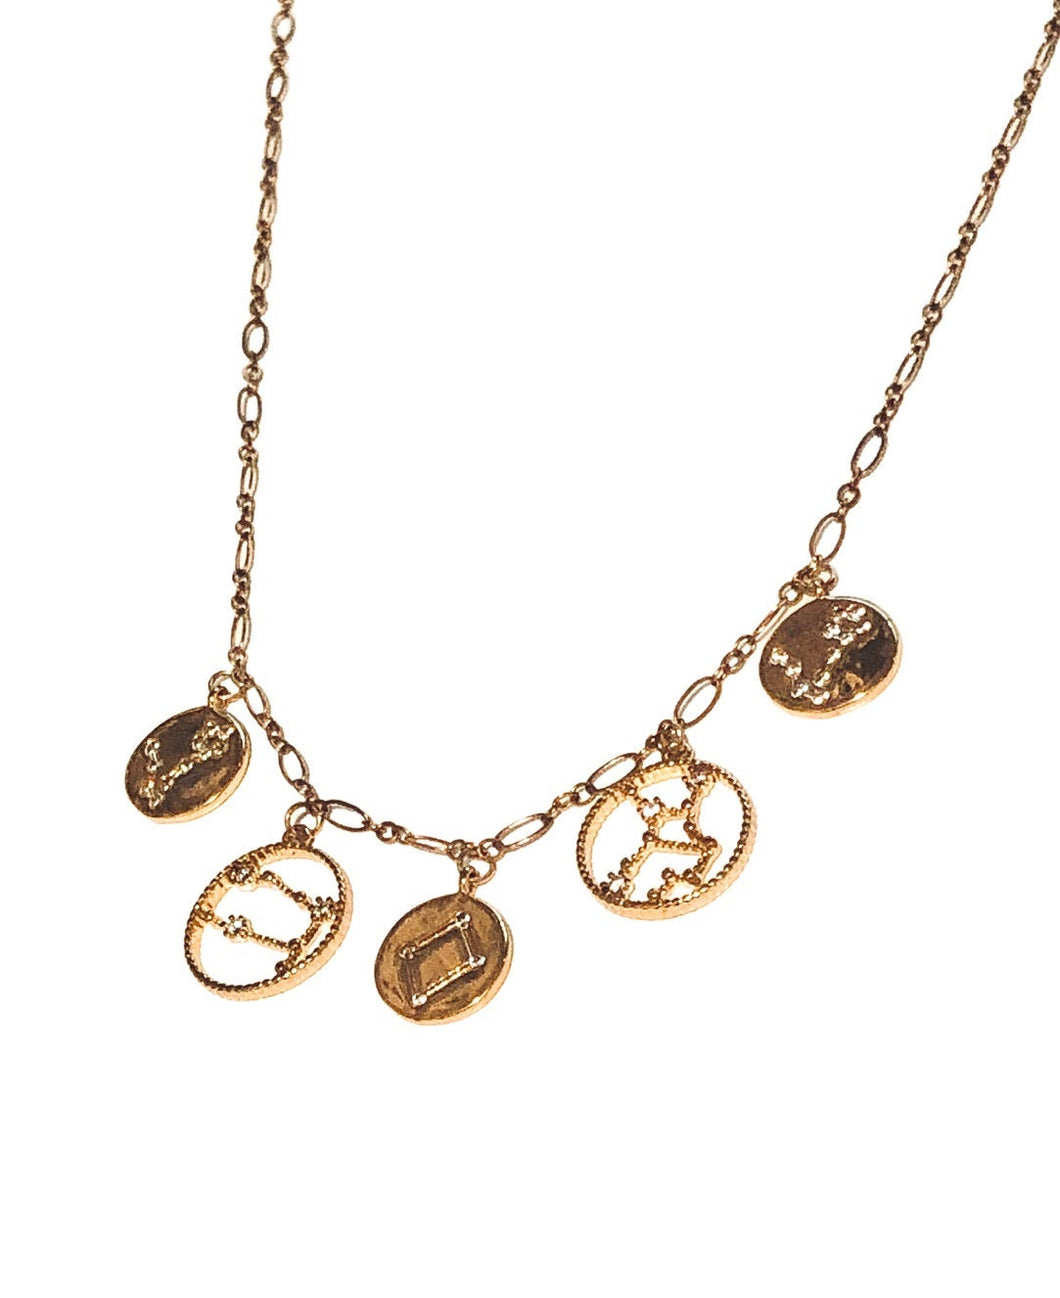 Zodiac Coin Charm Necklace